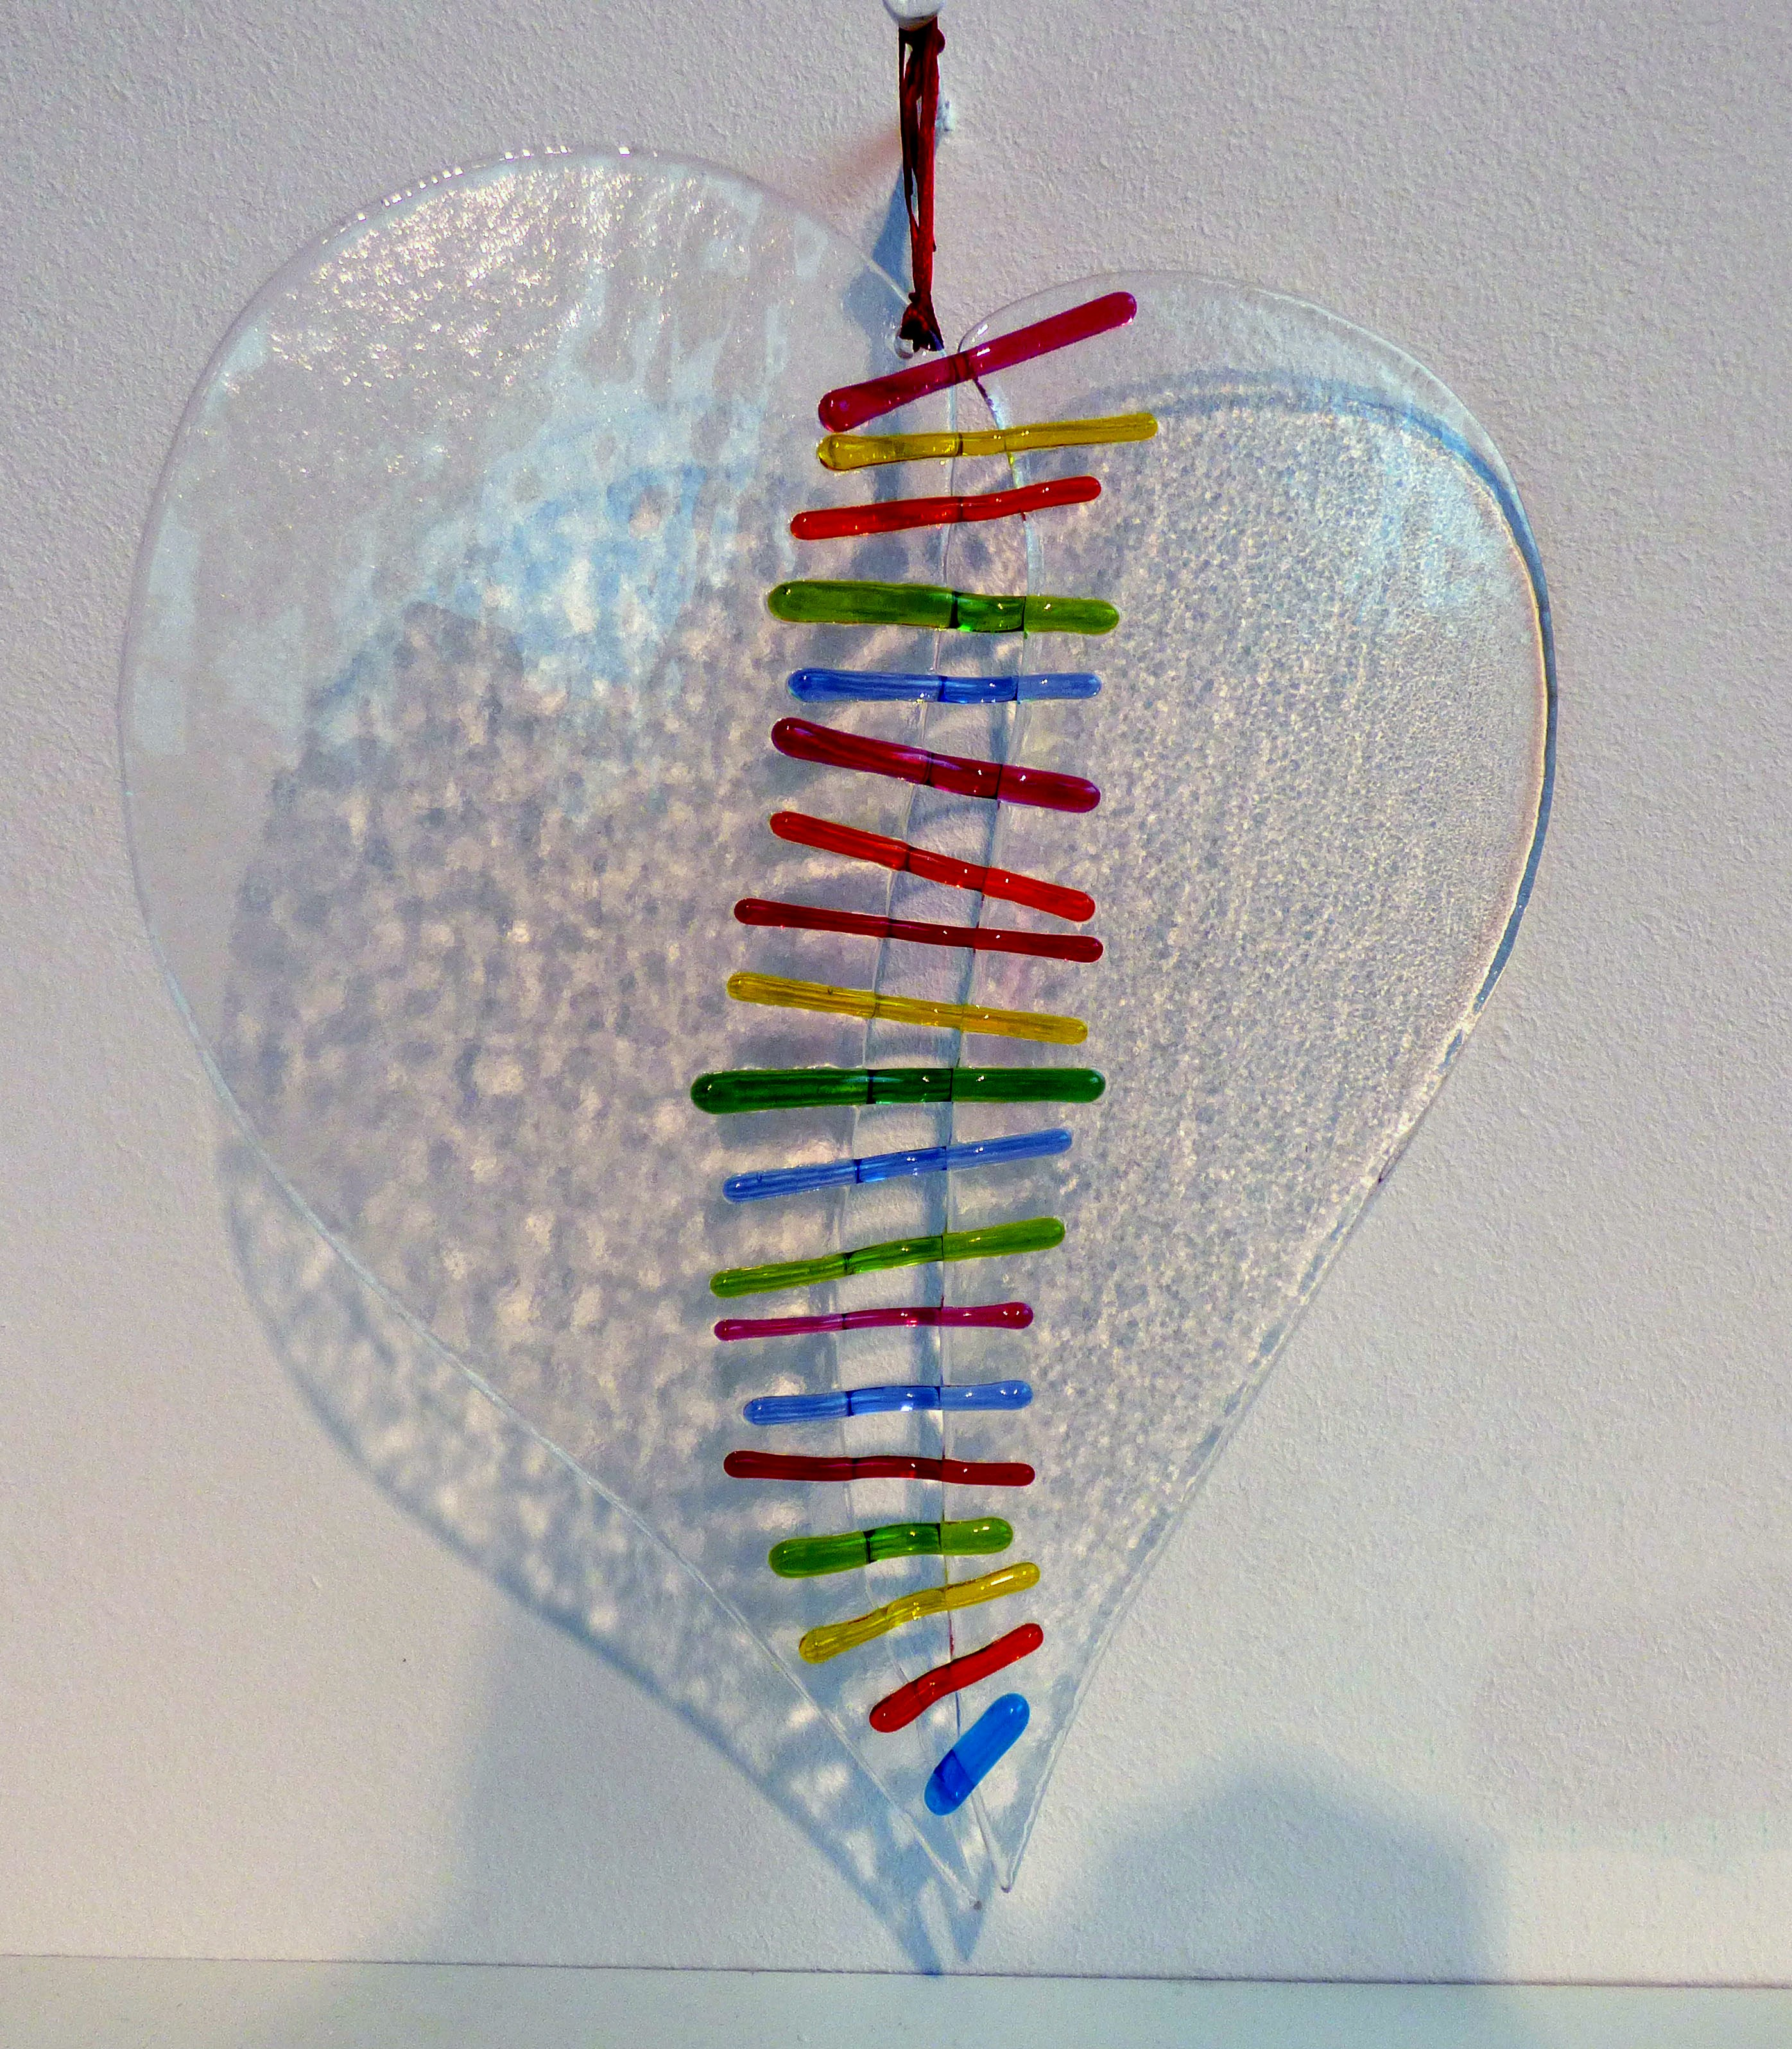 HOLD IT TOGETHER by Caroline Channing, kiln formed glass. From The Heart exhibition, St Helens, Feb 2020